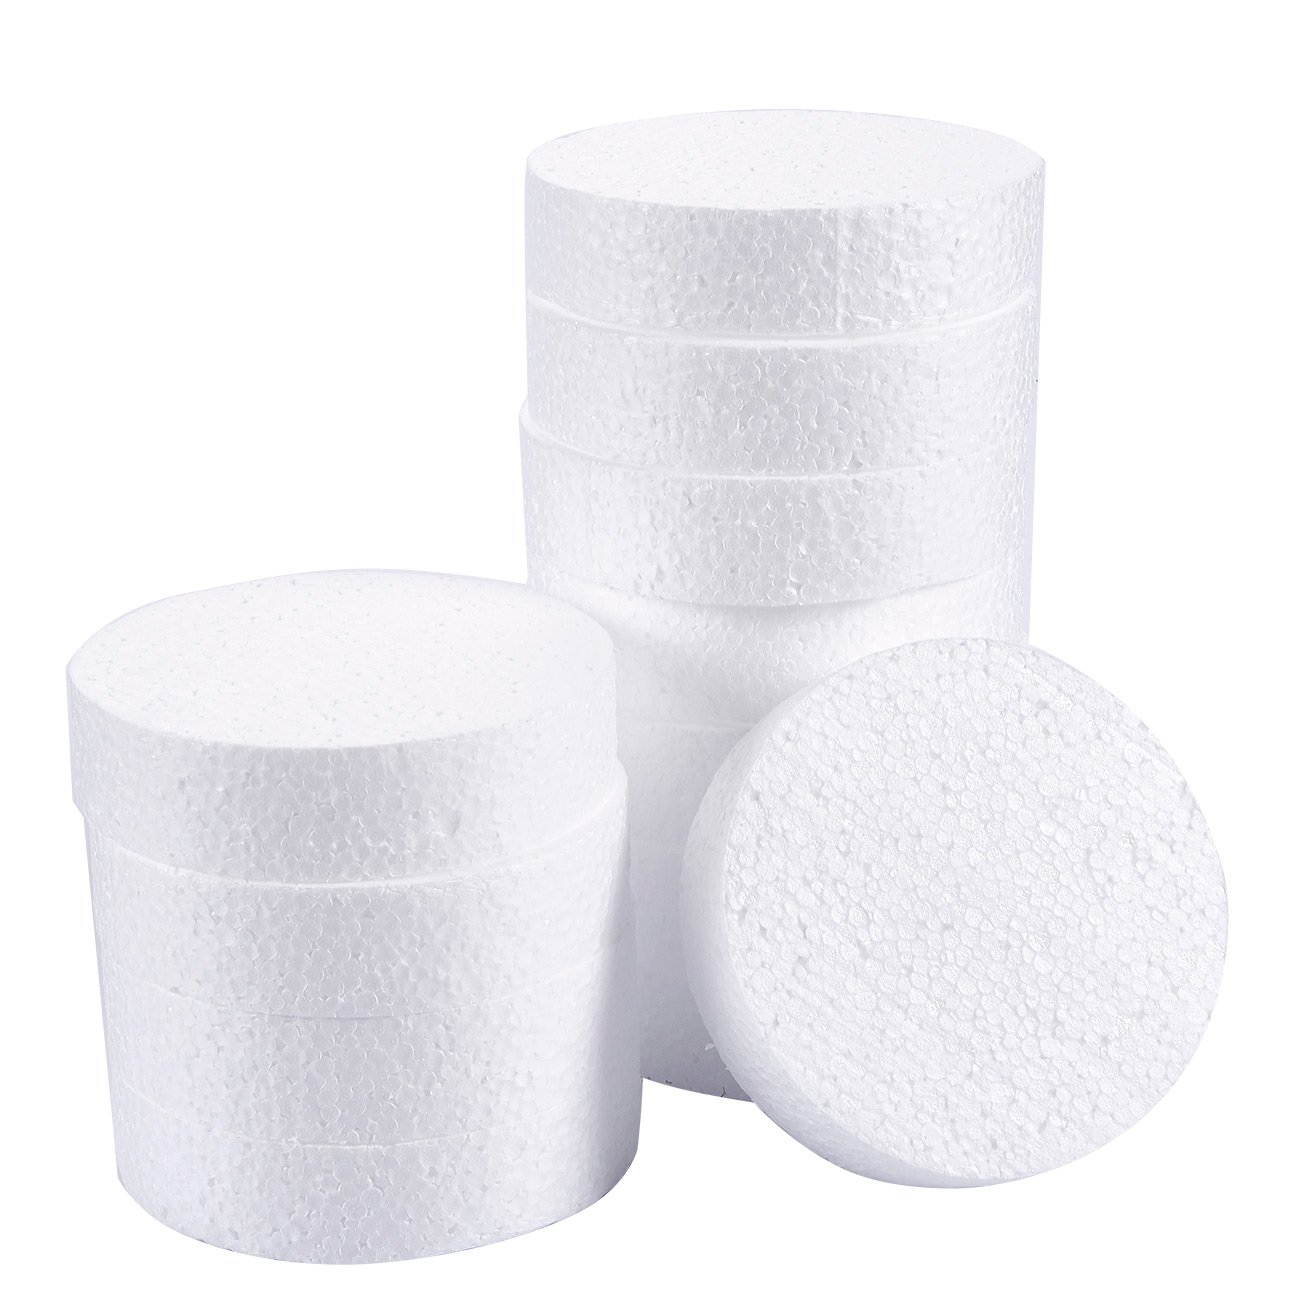 Foam Circles, Arts and Crafts Supplies (4 x 4 x 1 in, 12-Pack)